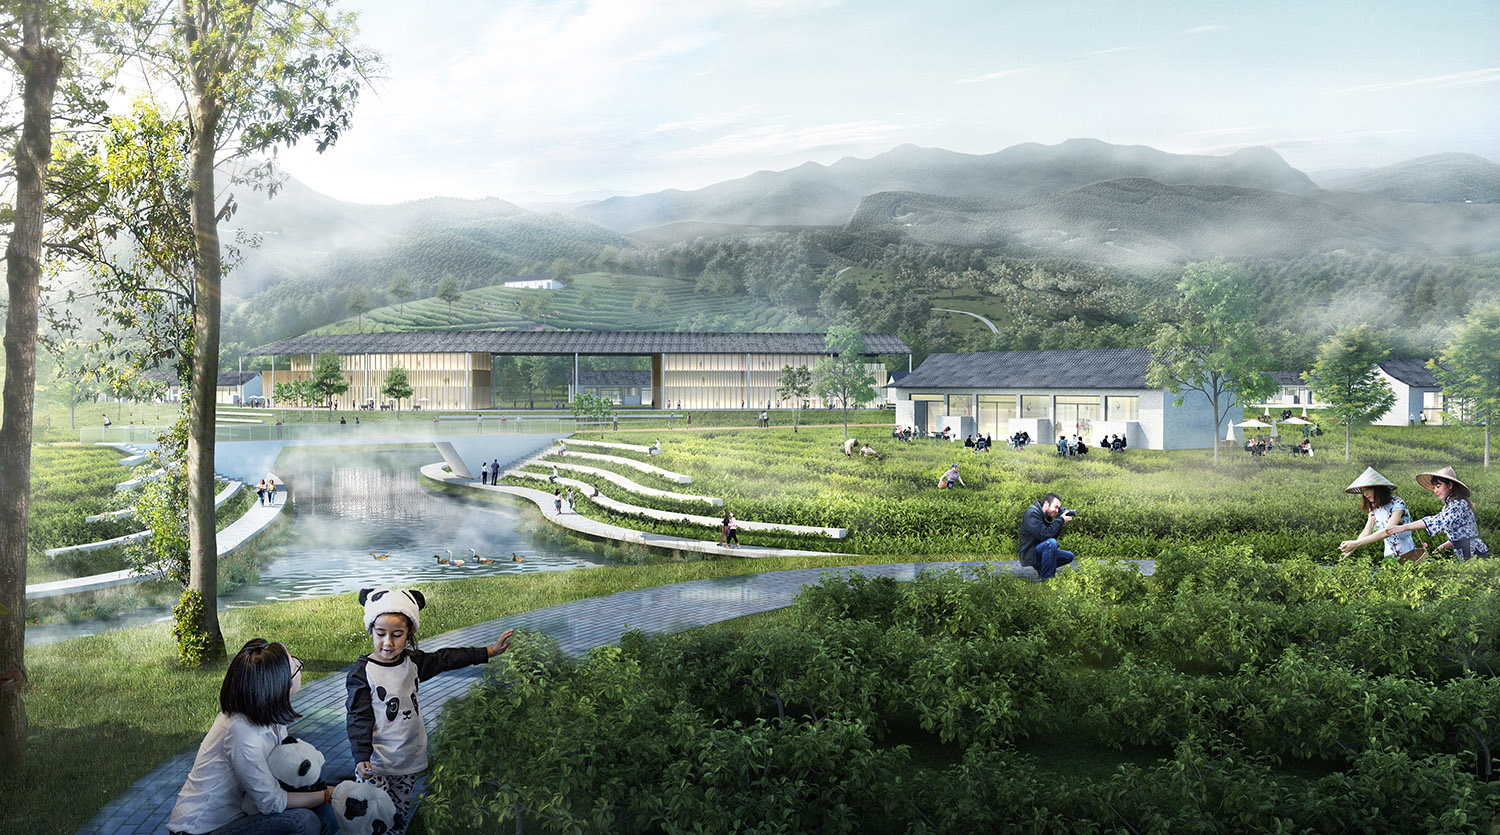 Outside, agricultural fields provide locally grown produce and regionally specific ingredients for the restaurants within the Reserve. SASAKI}